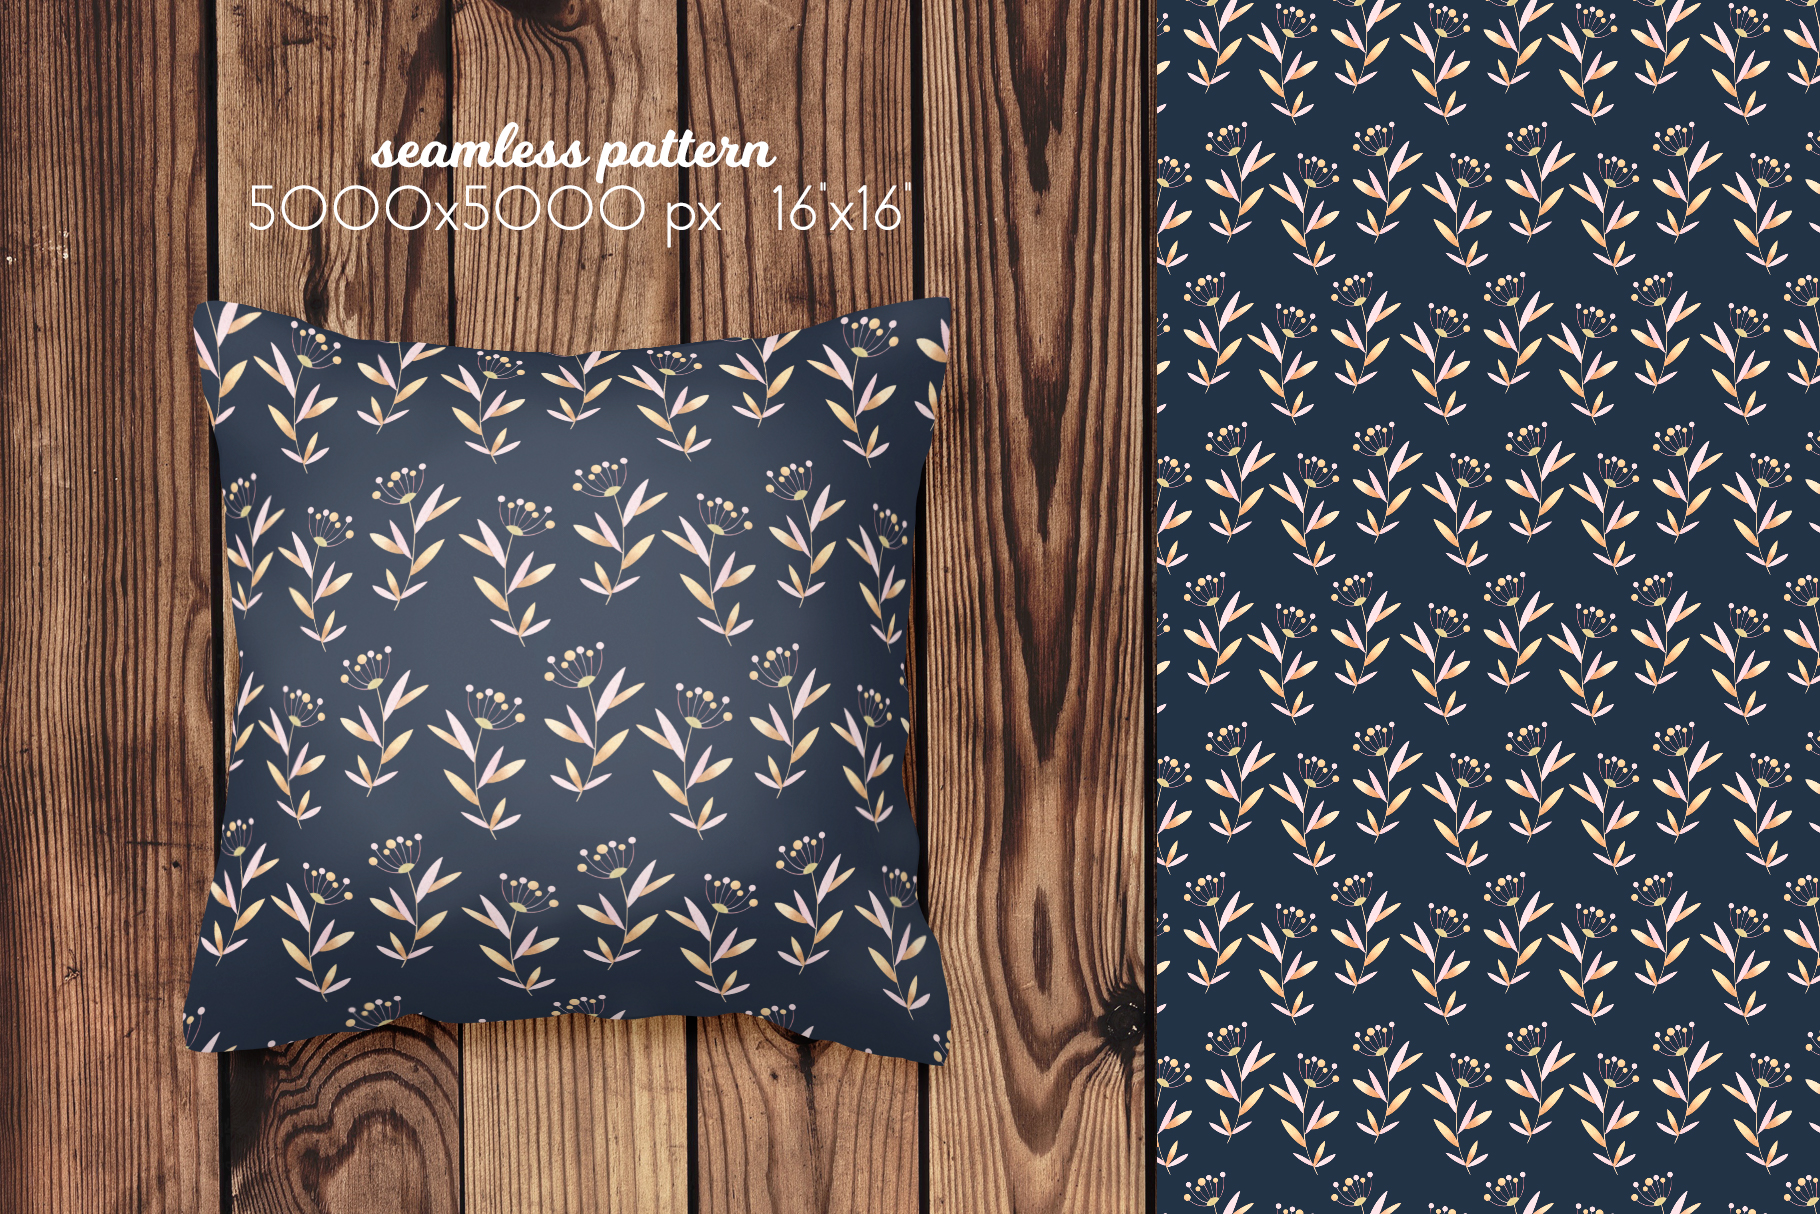 Butterflies and Dragonflies Patterns Collection example image 7